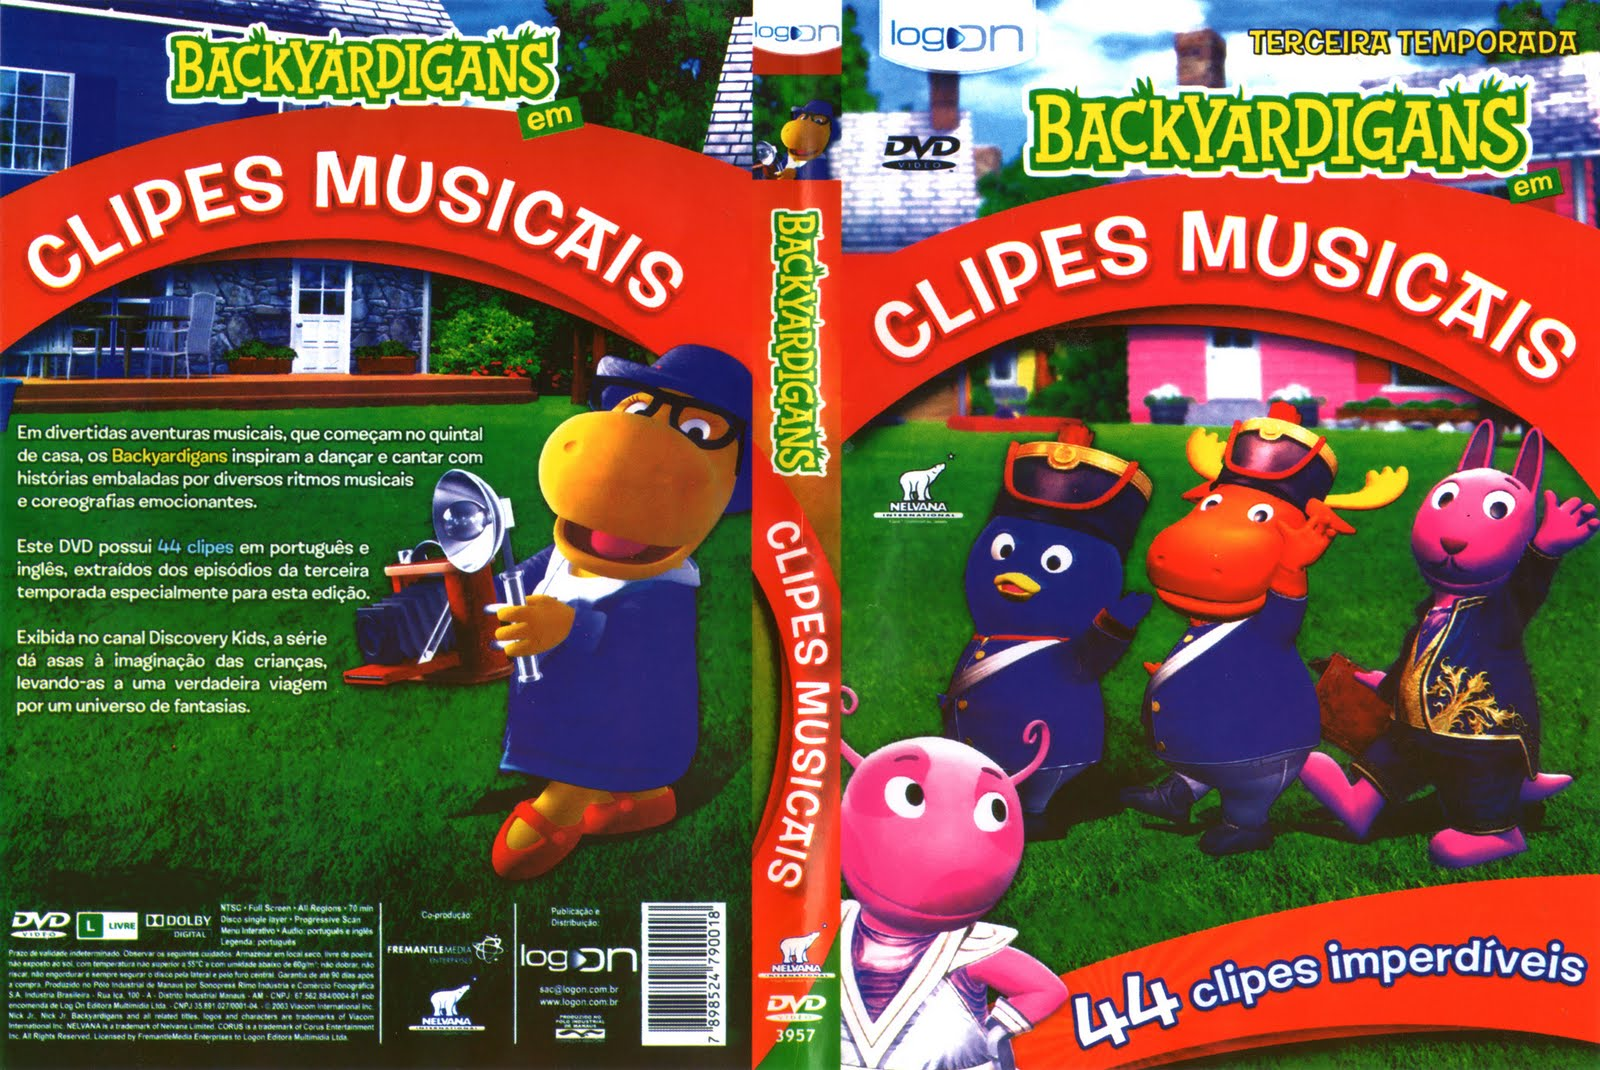 backyardigans clipes musicais